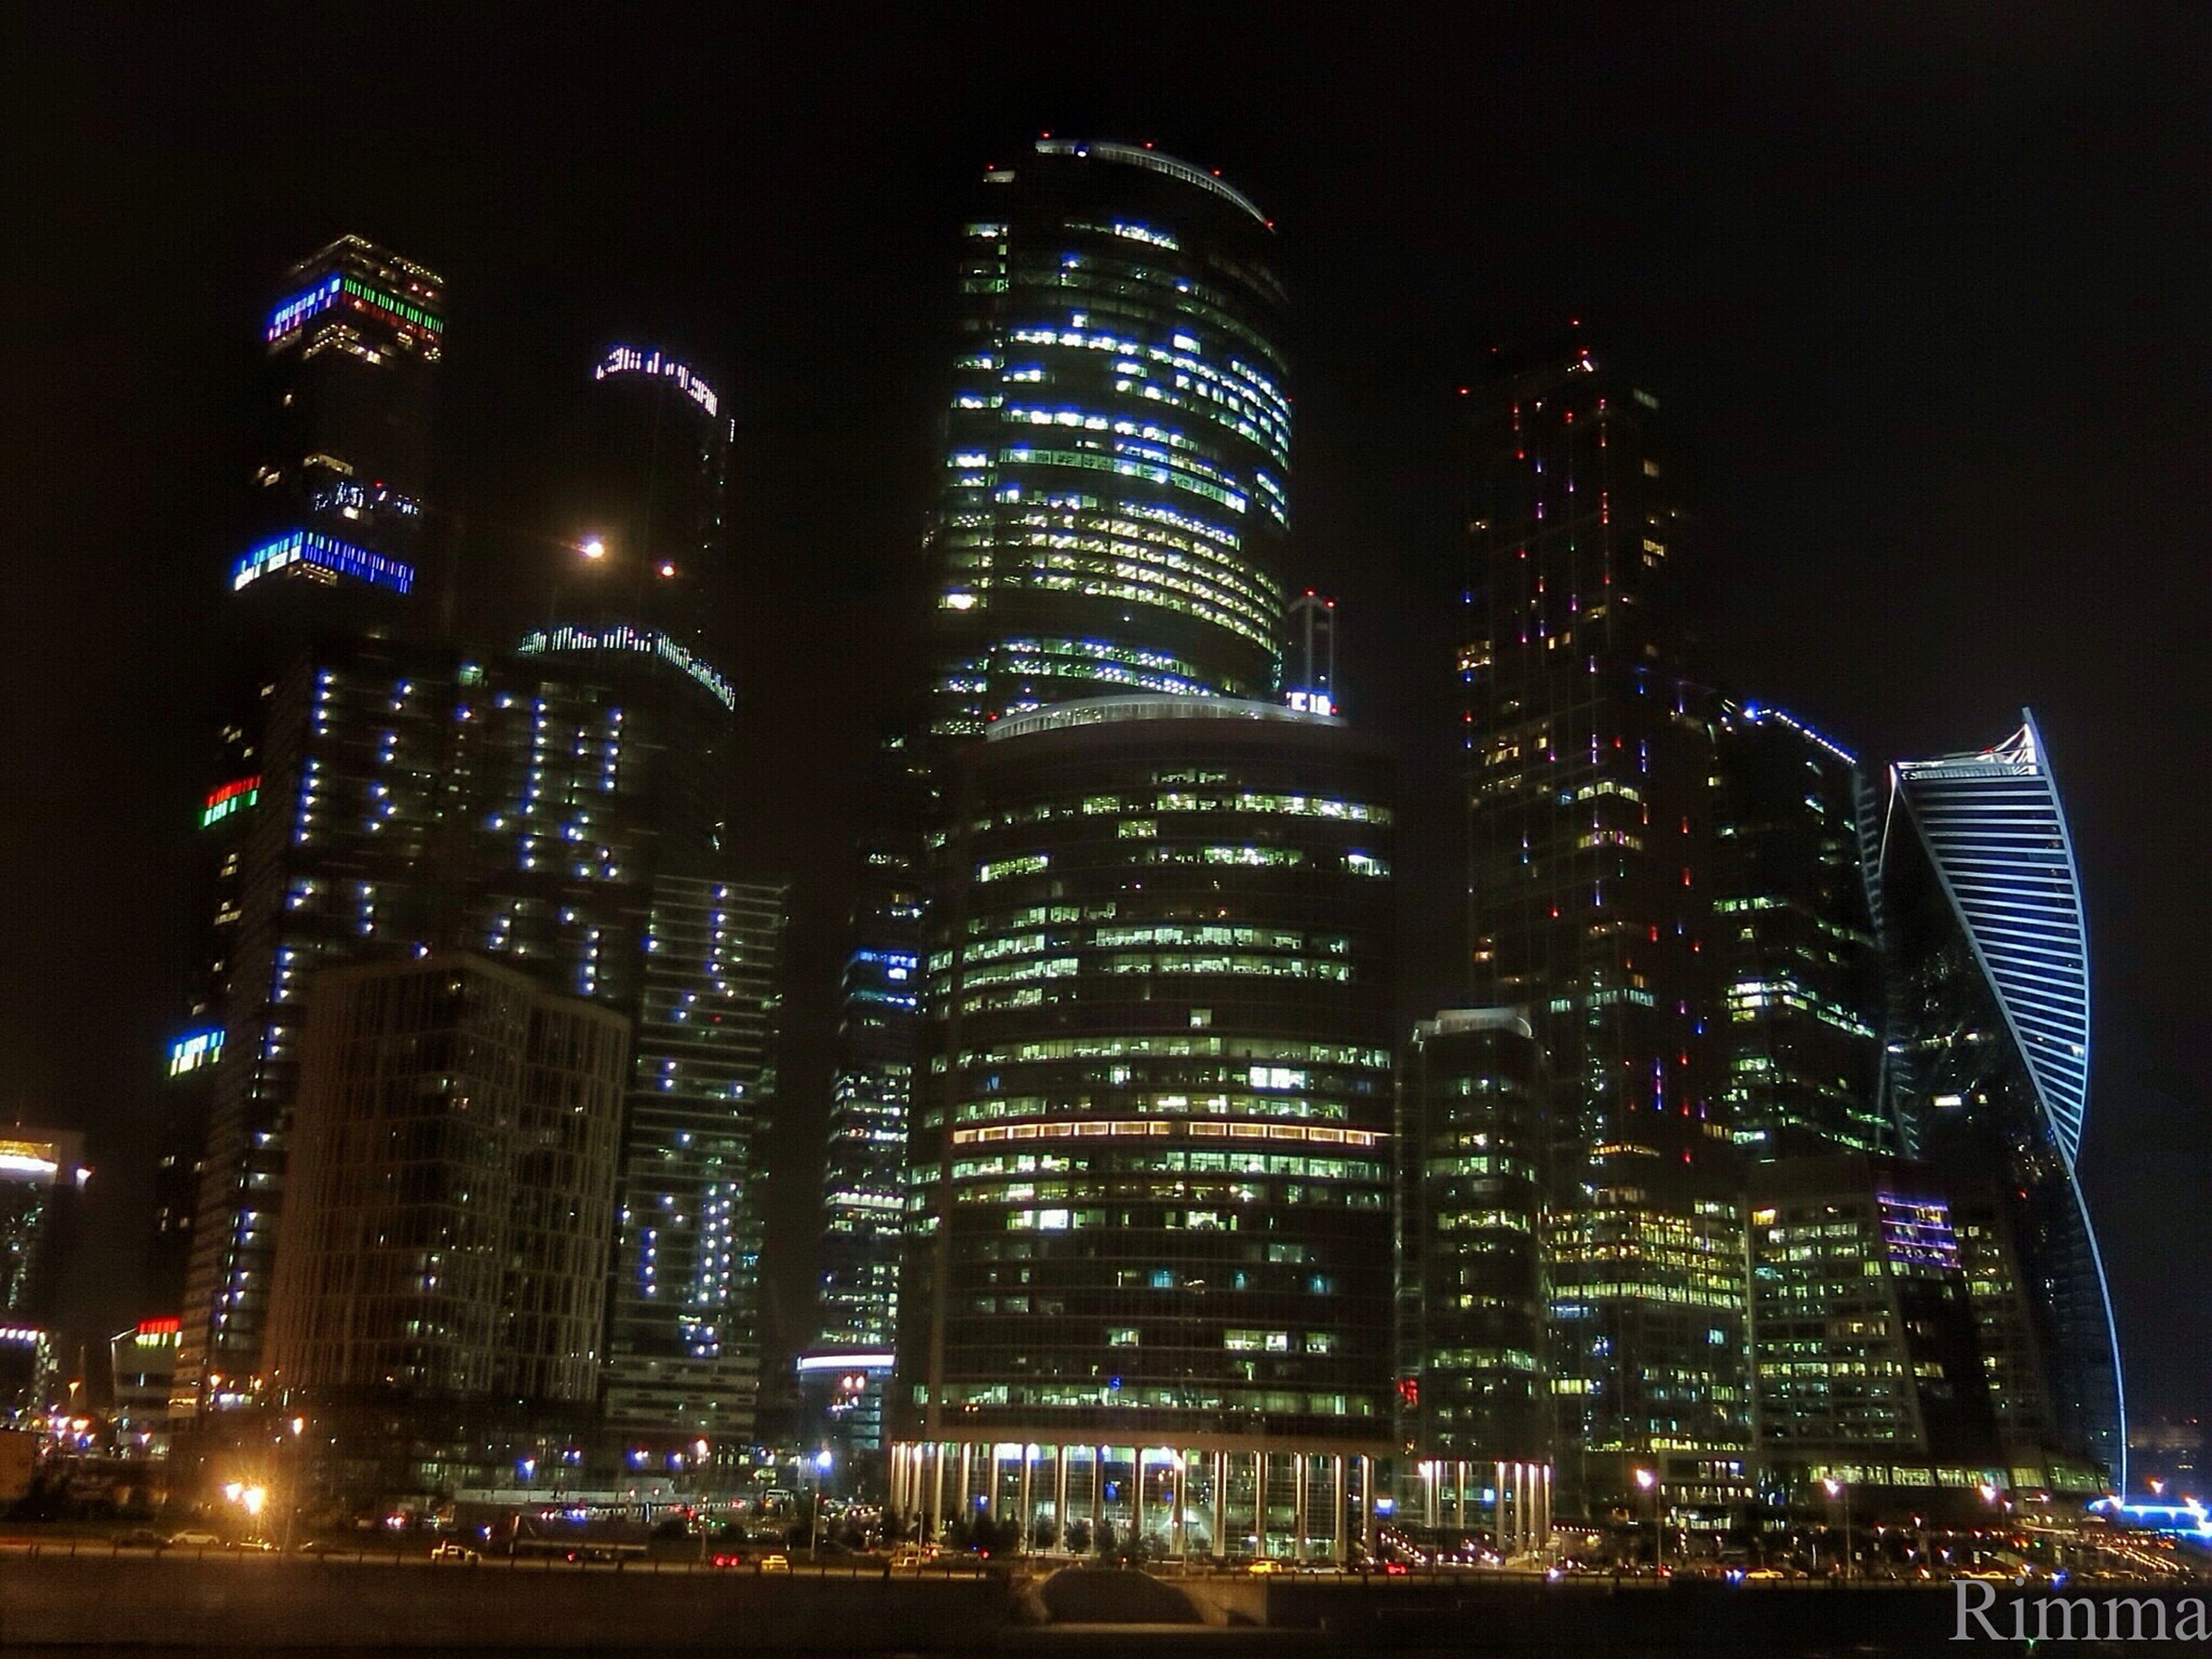 illuminated, skyscraper, building exterior, night, city, architecture, tall - high, built structure, urban skyline, tower, modern, growth, cityscape, low angle view, office building, sky, development, tall, building story, city life, financial district, outdoors, spire, capital cities, skyline, urban scene